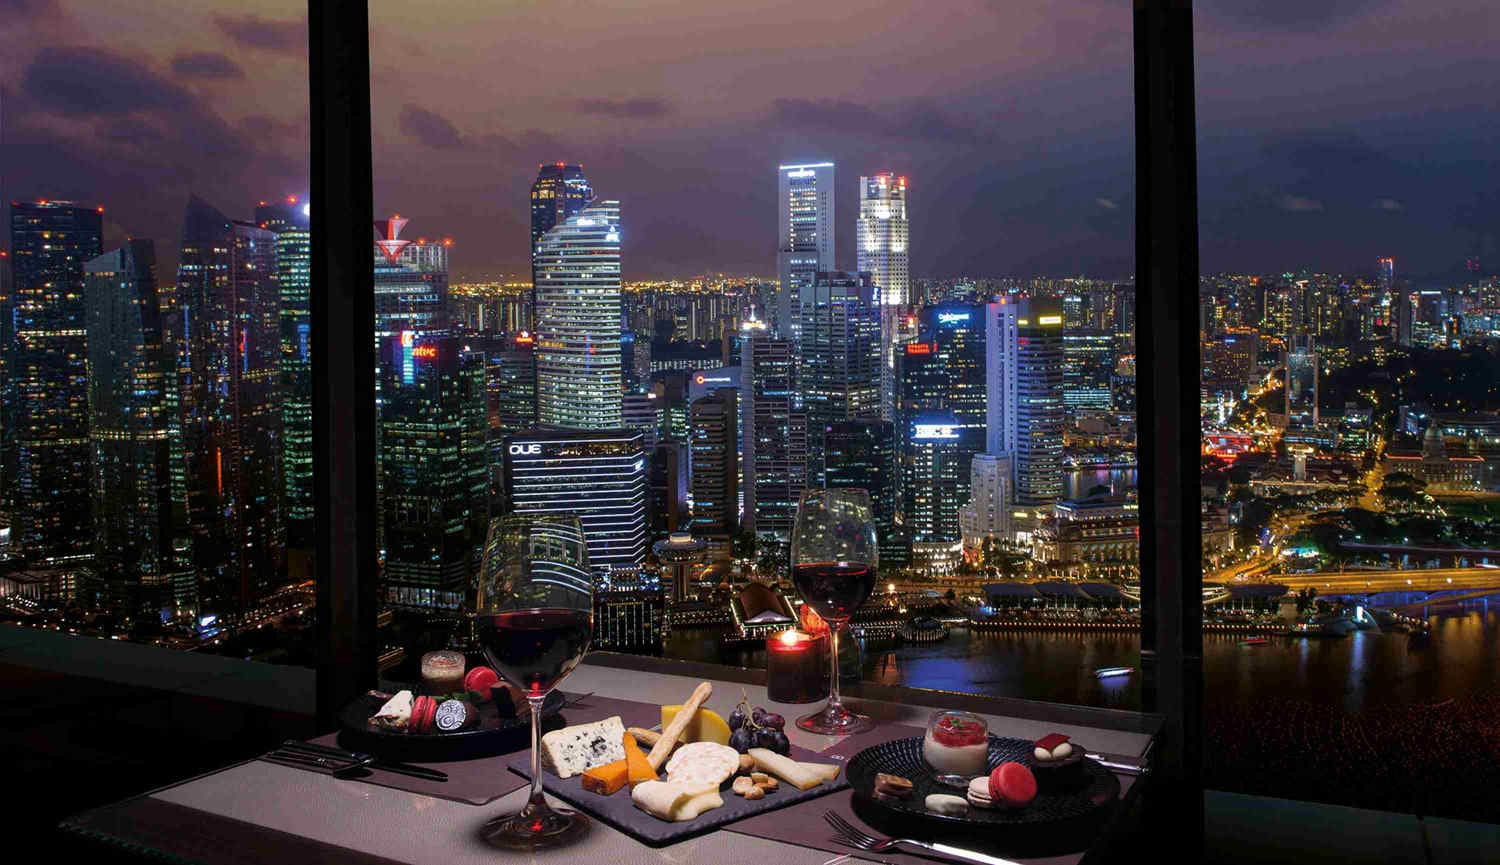 Club55 – The Cheese and Chocolate Buffet with Night View